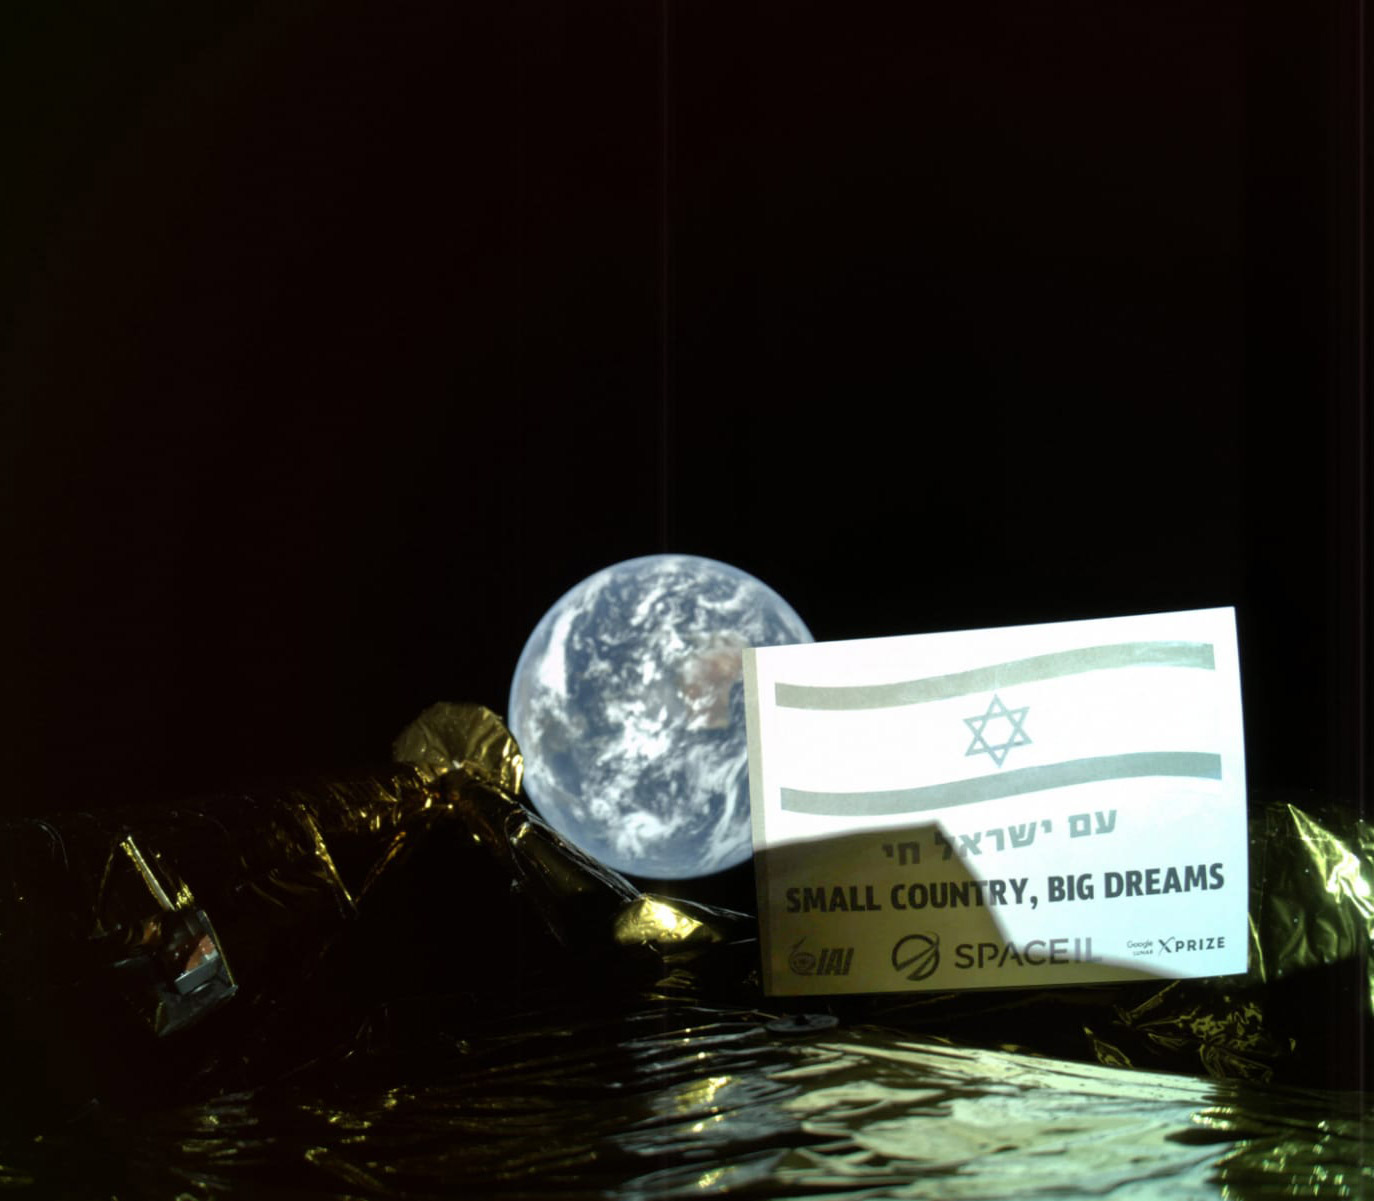 Israel Moon Spacecraft Selfie